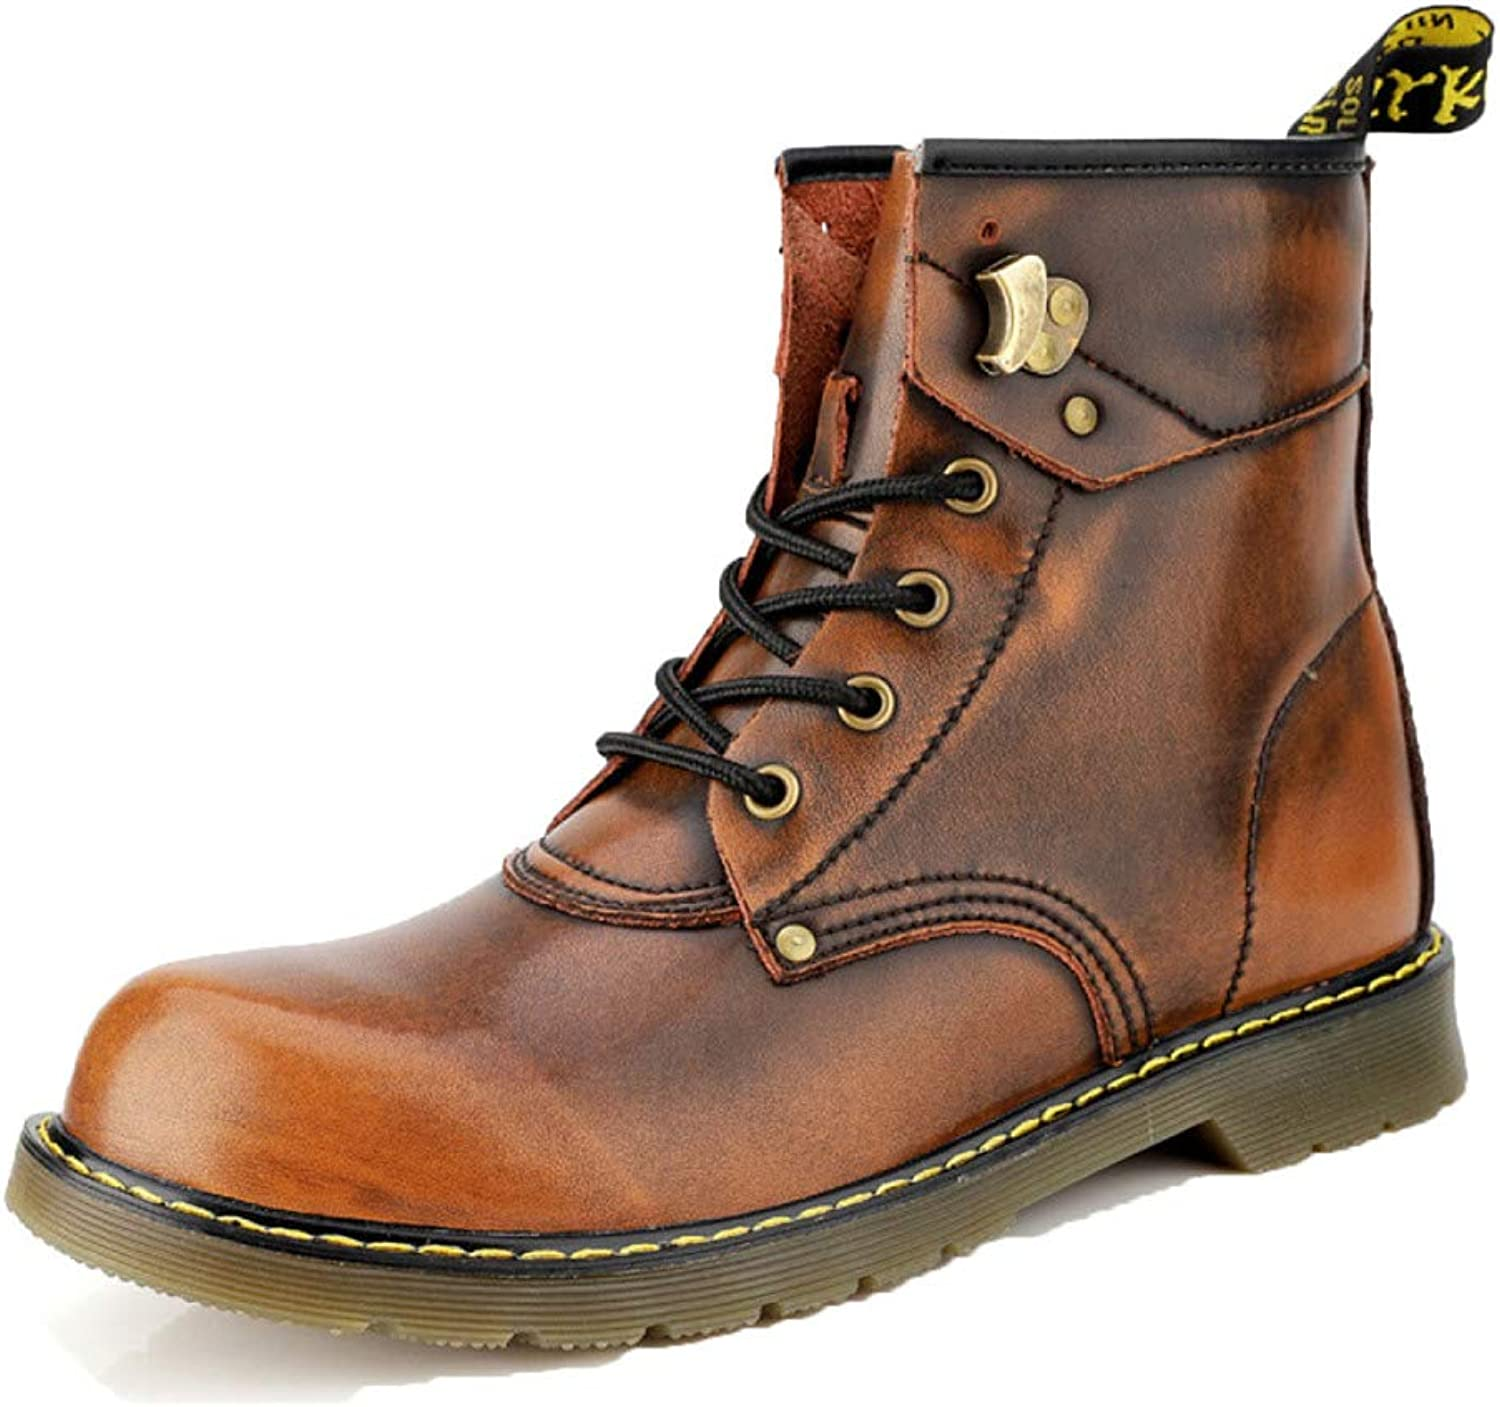 Men's Boots Work Boots Waterproof Trainers shoes Martin Boots shoes Retro Desert